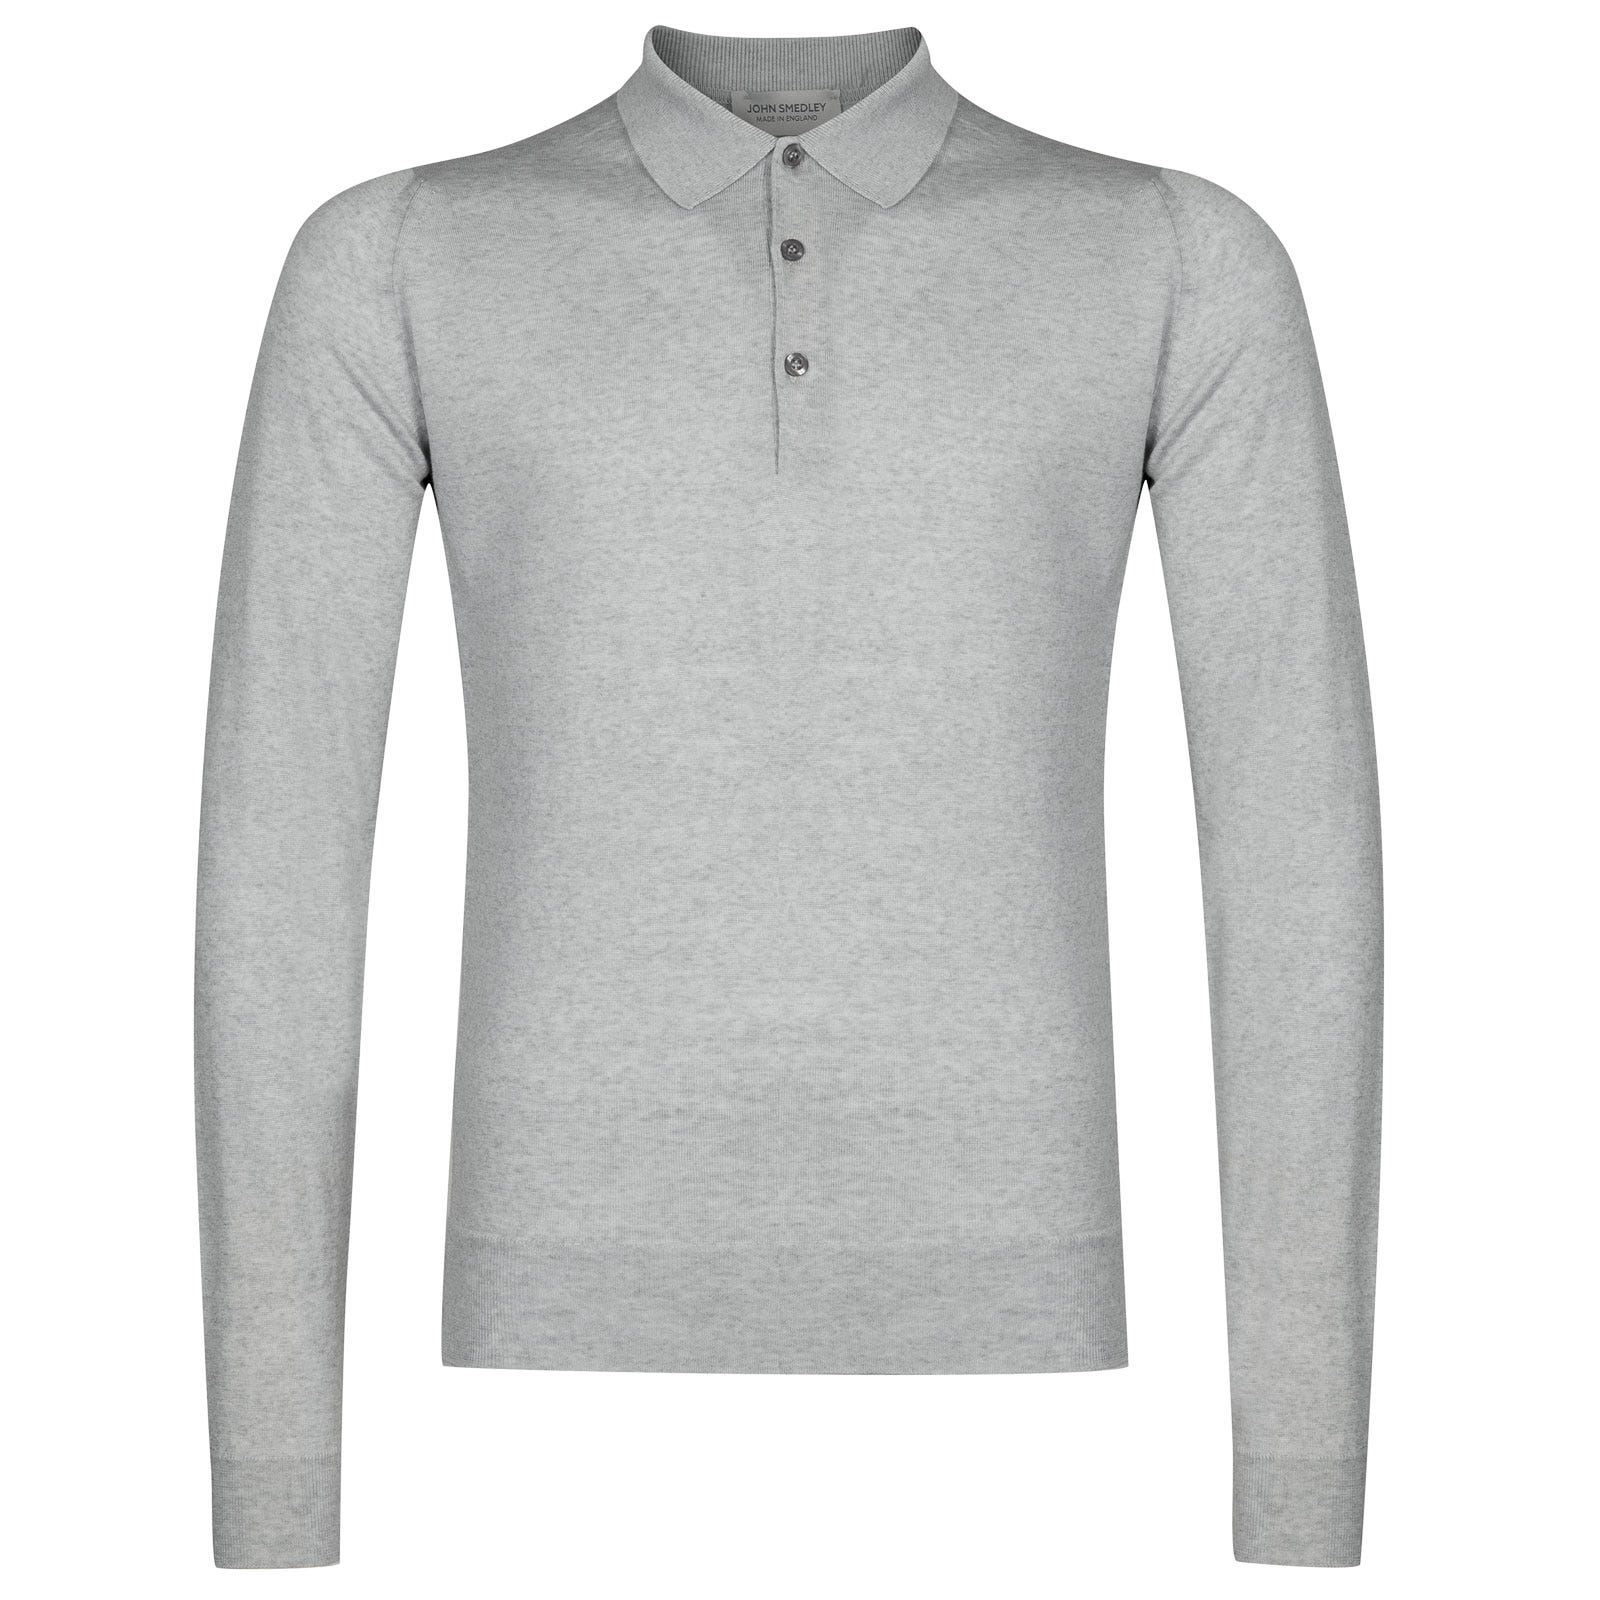 John Smedley belper Merino Wool Shirt in Bardot Grey-XXL